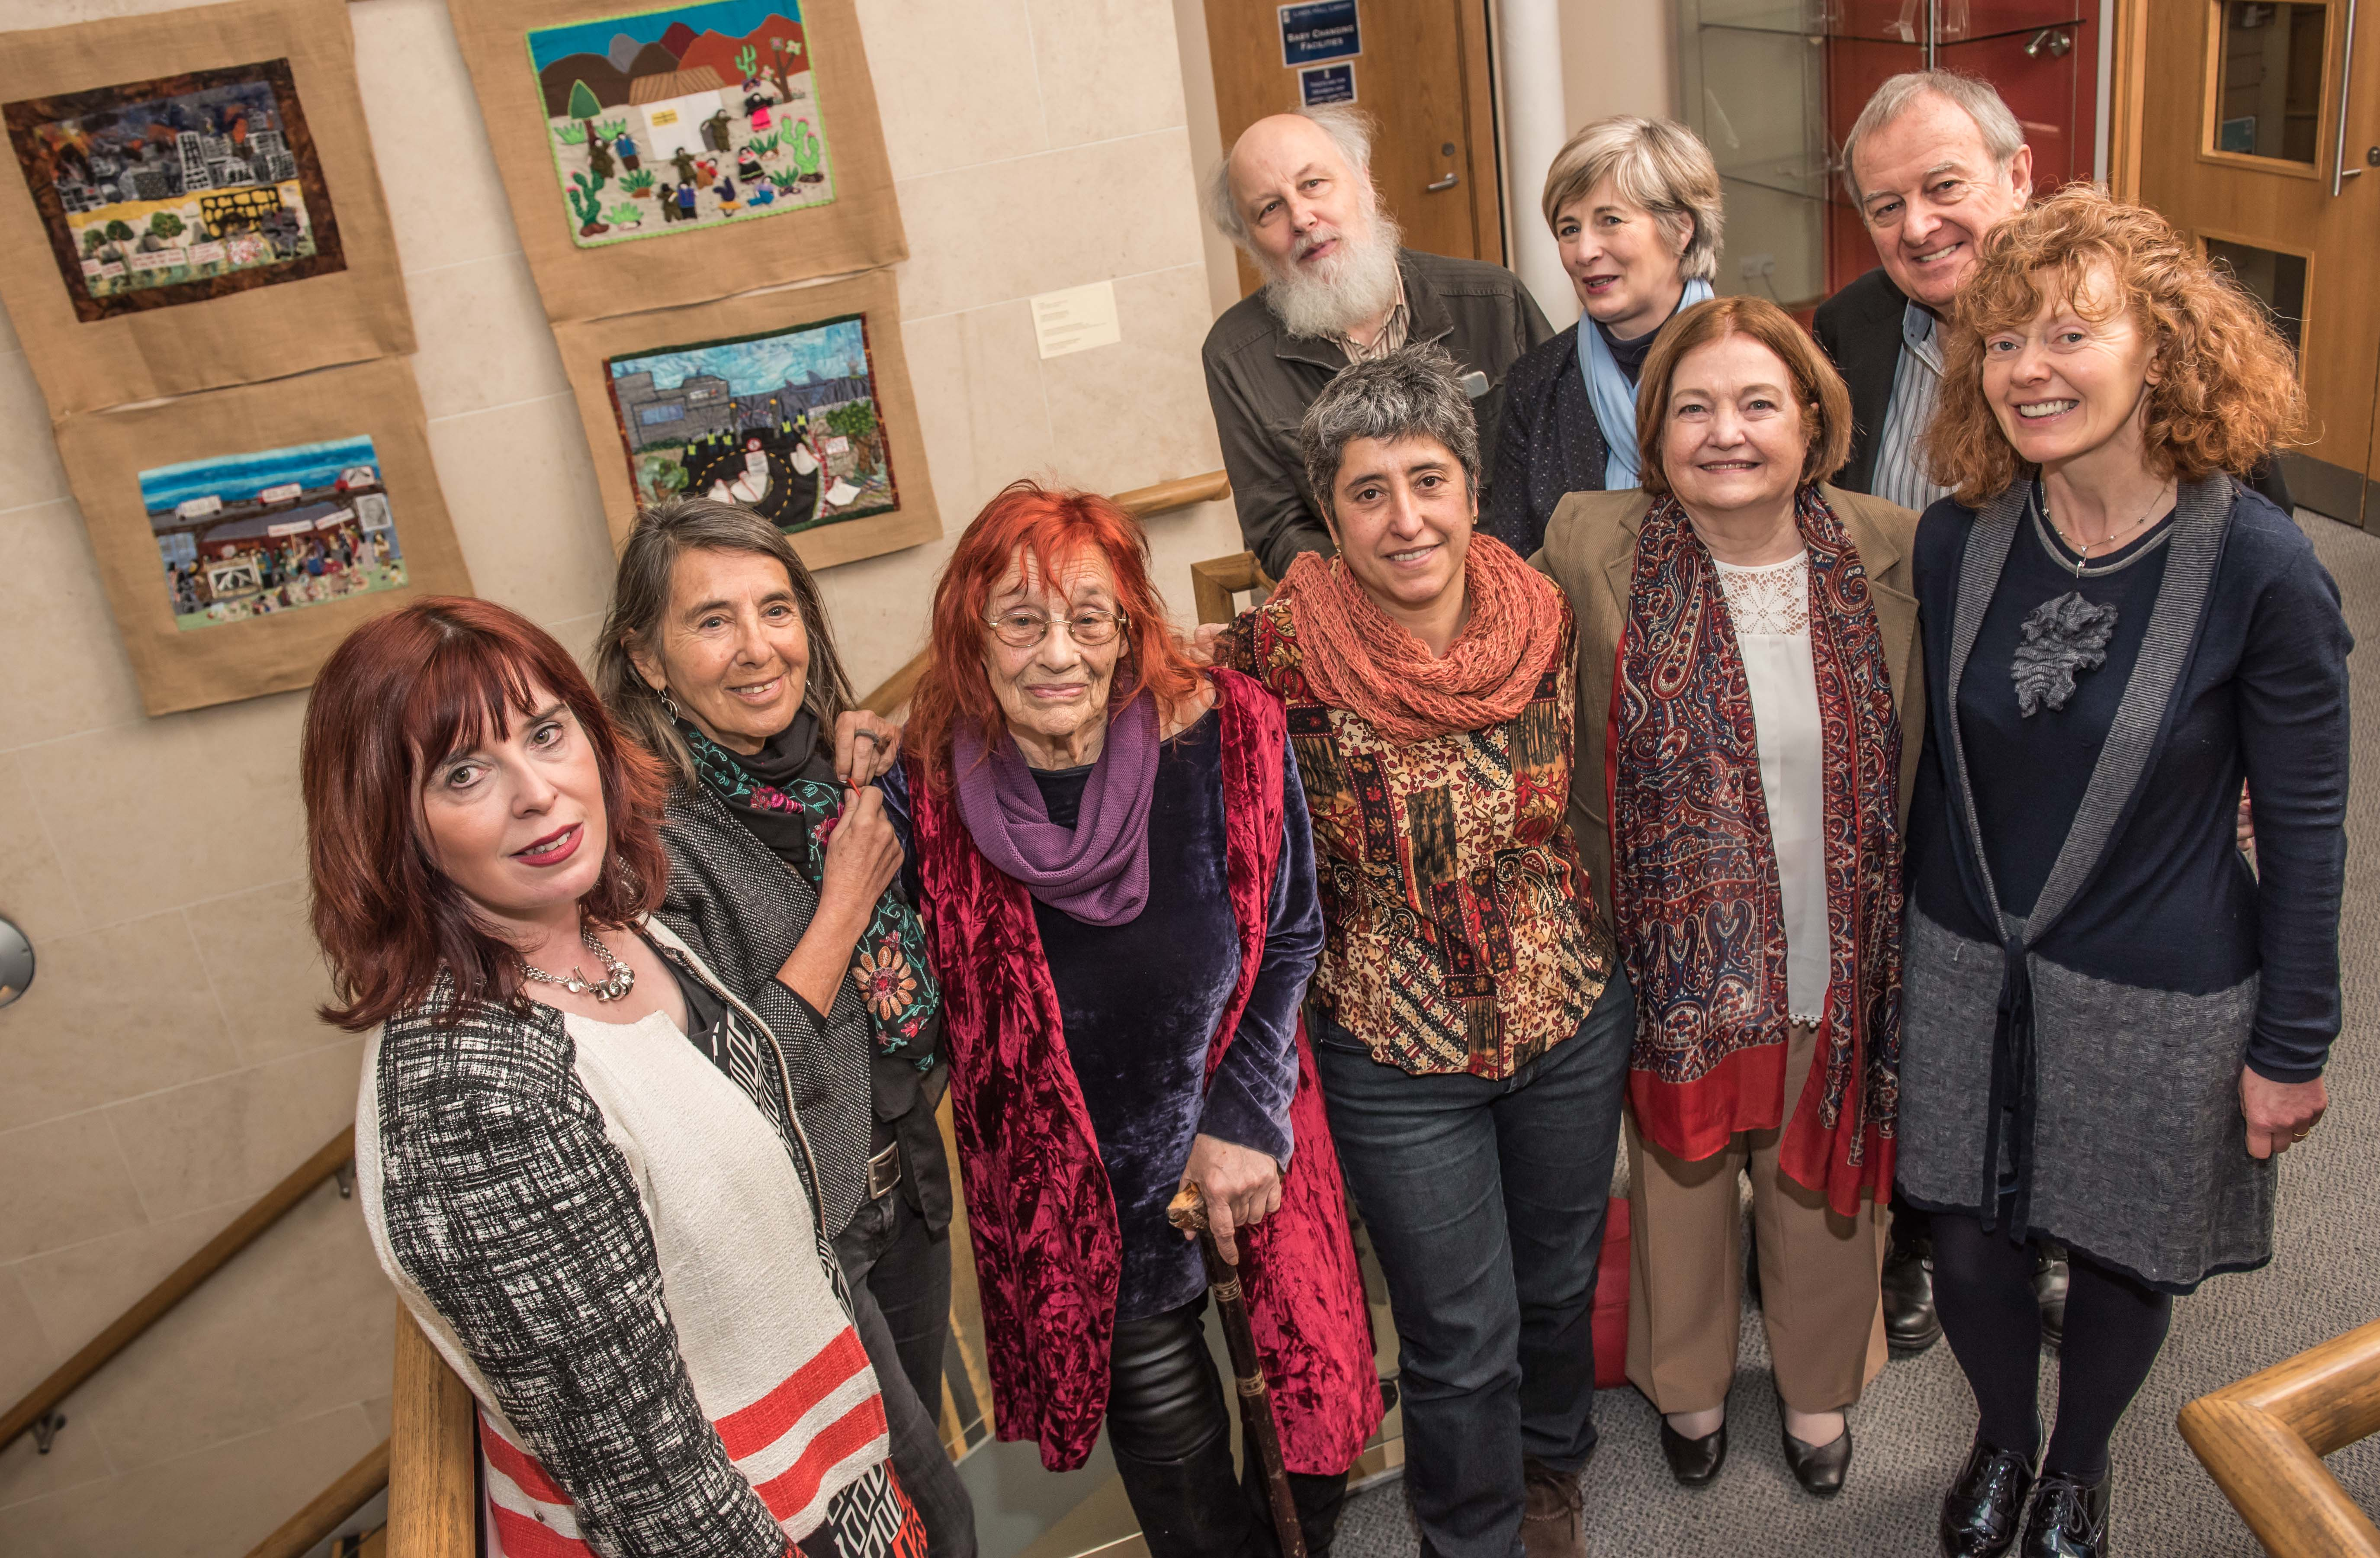 The exhibition team with Margaretta D'Arcy, Peace Activist (3rd from left); Maired Maguire, Nobel Peace Laureate (2nd from right); and Phil Scraton, Emeritus Professor of Criminology, QUB (back row, right), at the launch. (Photo: Linenhall Library)